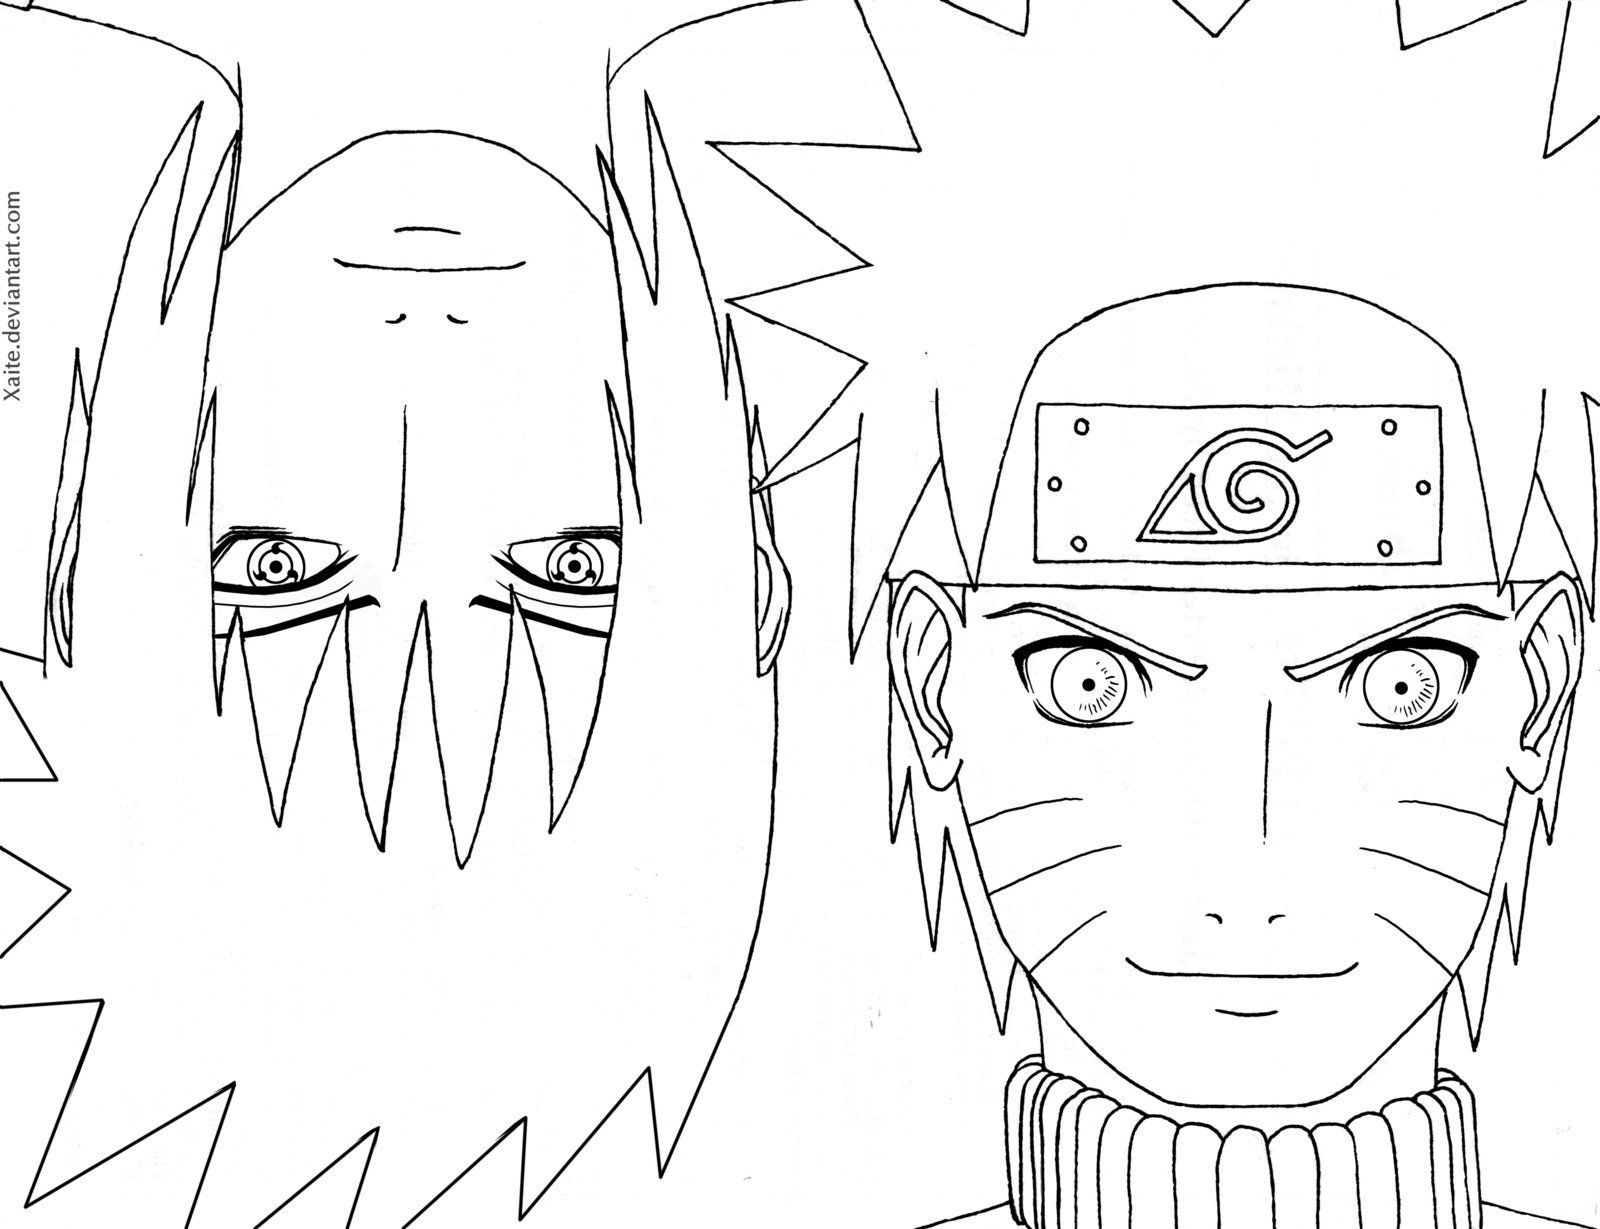 sakura haruno from naruto anime coloring pages for kids printable